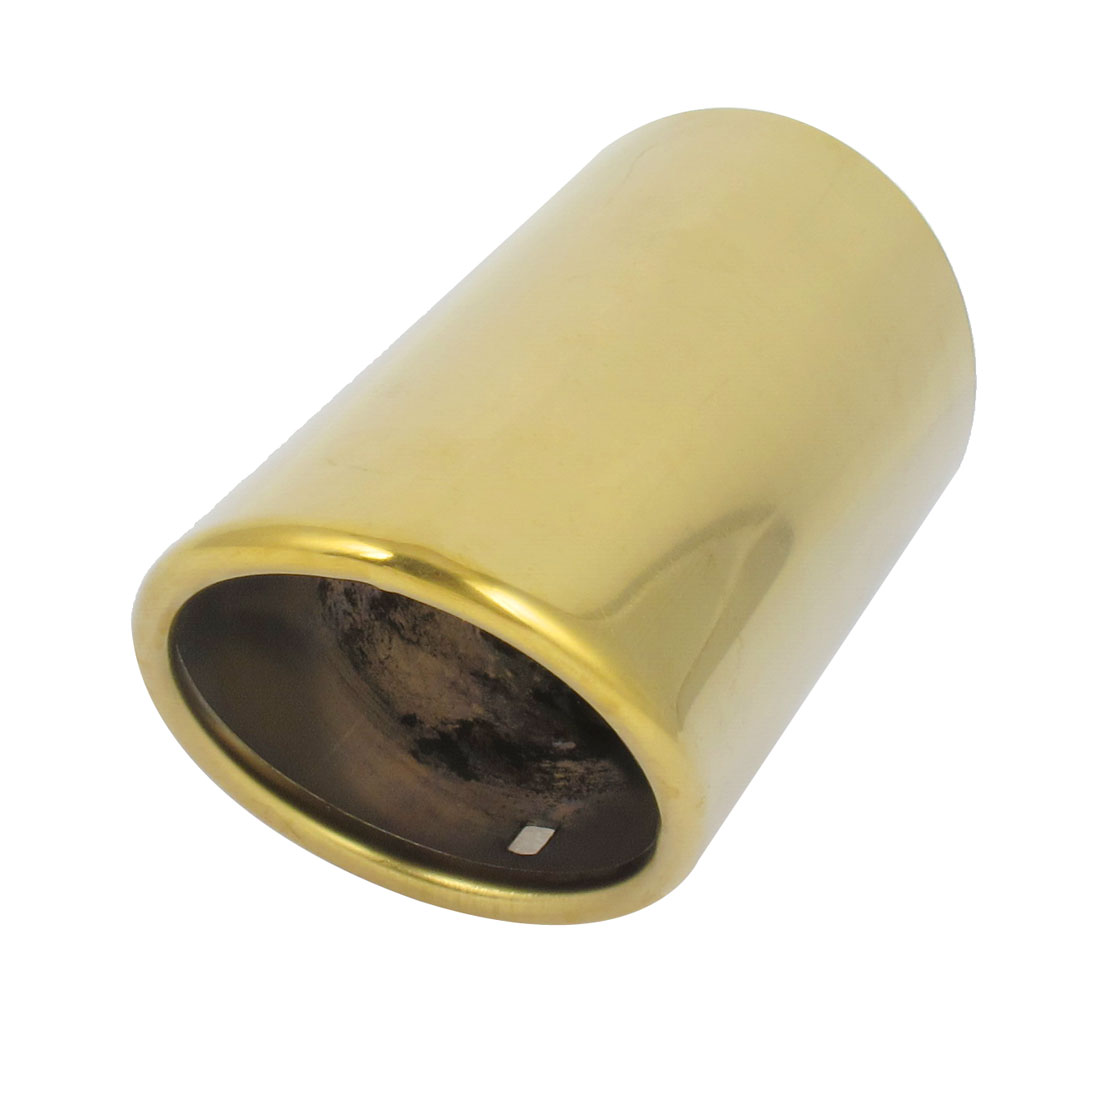 Car Gold Tone Stainless Steel Oval Rolled Exhaust Muffler Tip Pipe for Sagitar